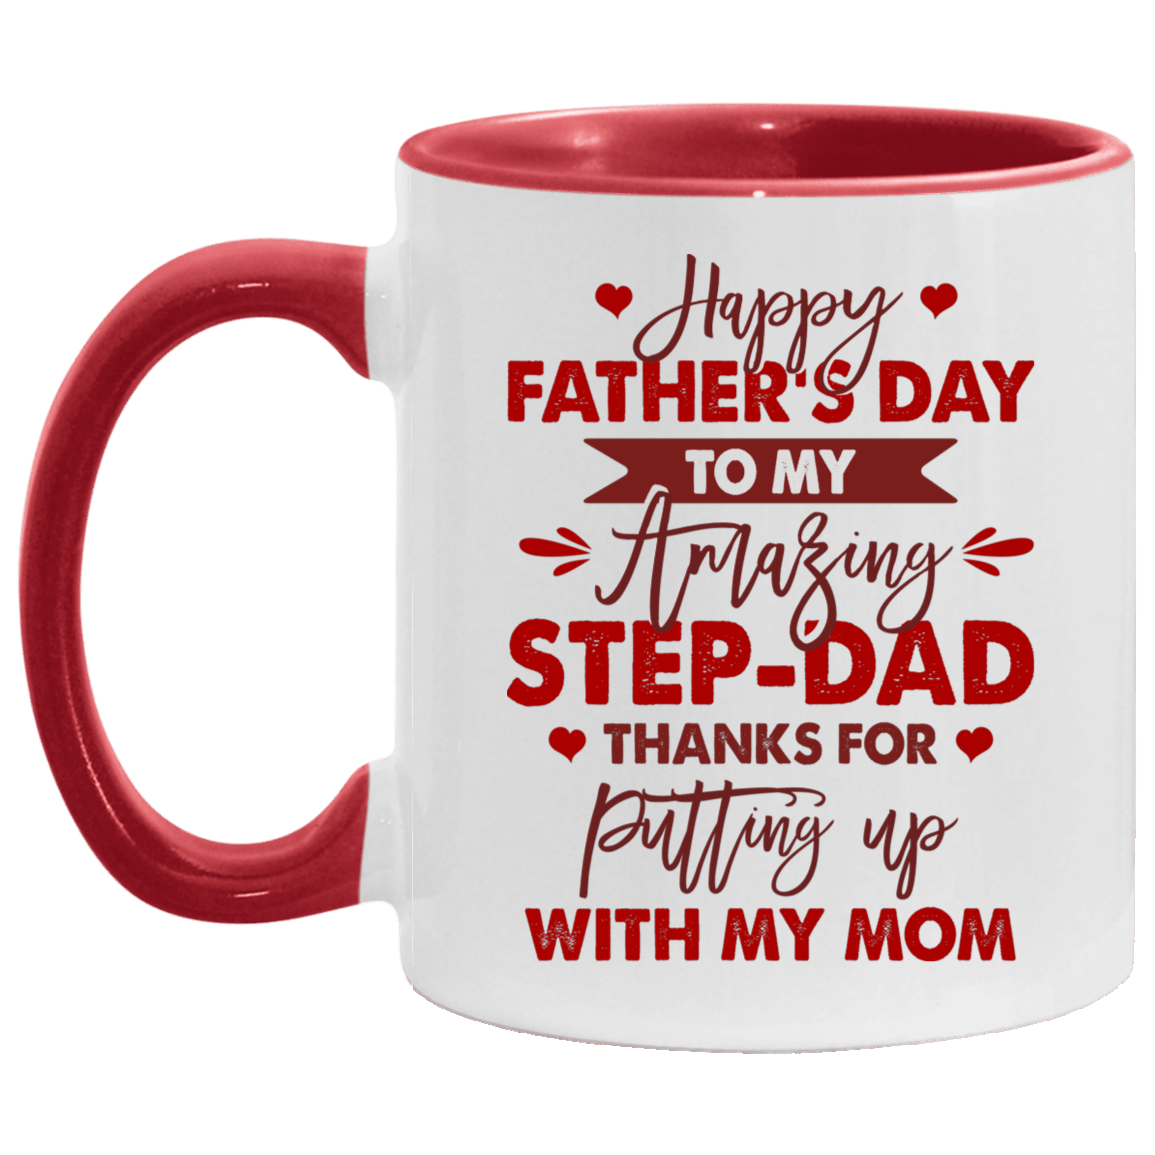 Thanks for being a Friend Mother Mug 11oz Grandma Gift The Golden Girls